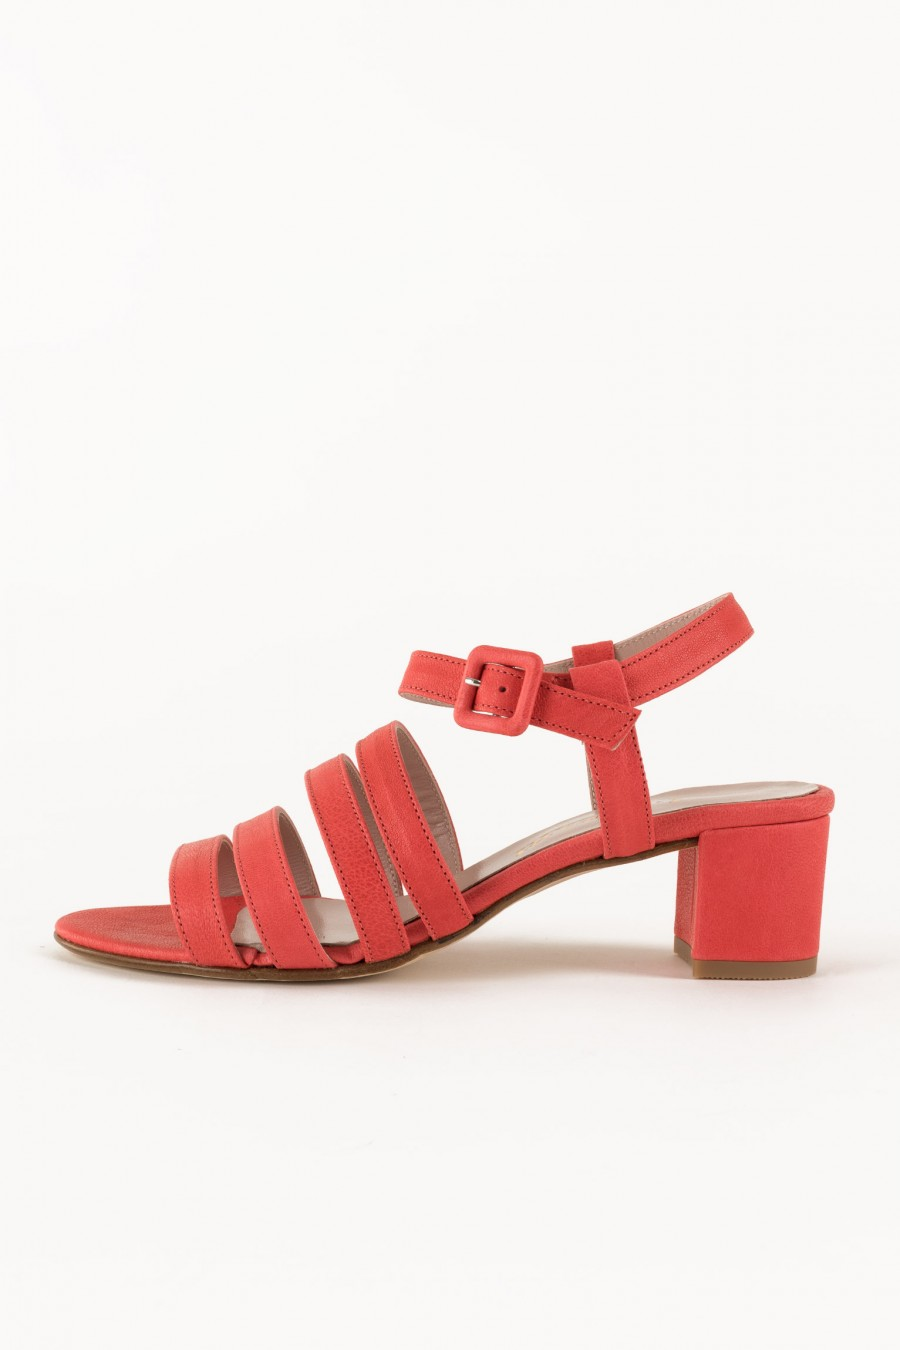 Heeled red sandals